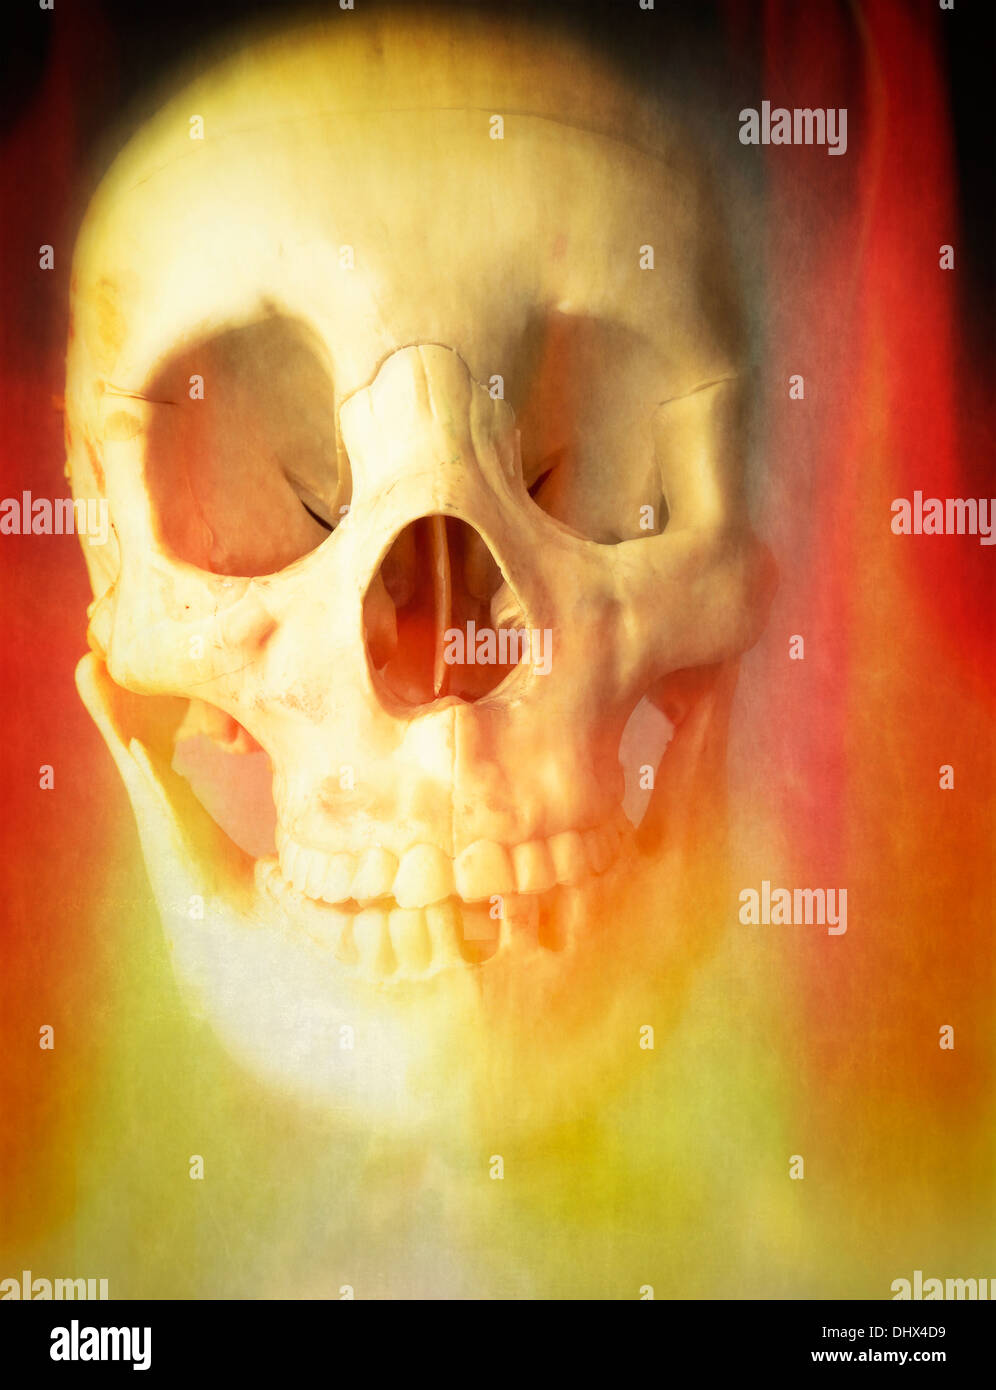 A human skull burning in hell fire. - Stock Image